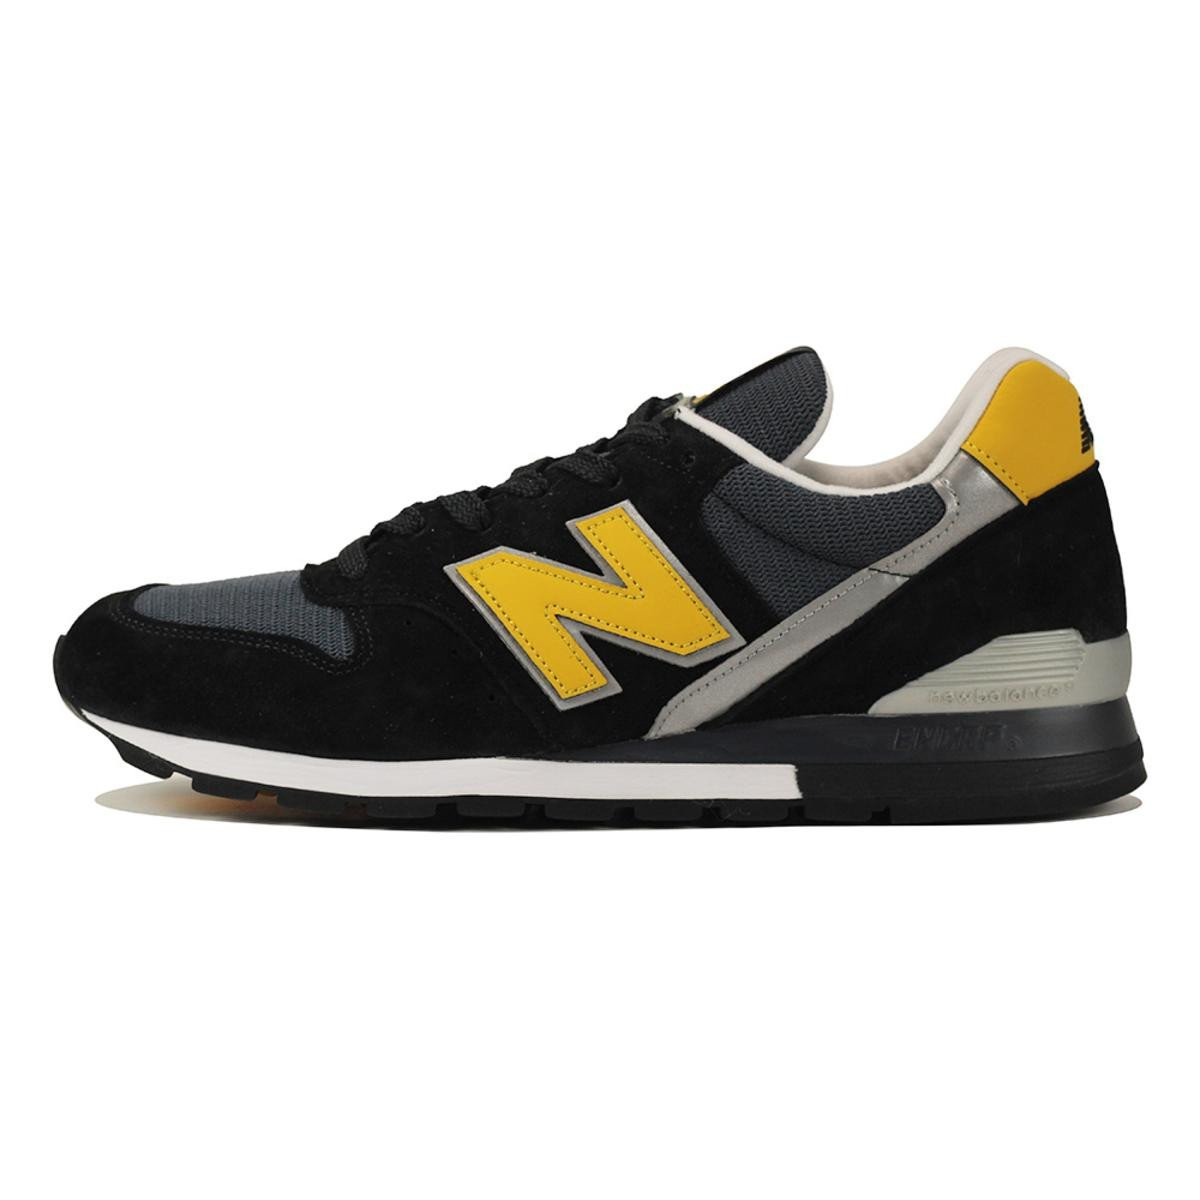 detailed look 557b2 78d53 New Balance for Men  996 Connoisseur Retro Ski Black with Yellow   Sil